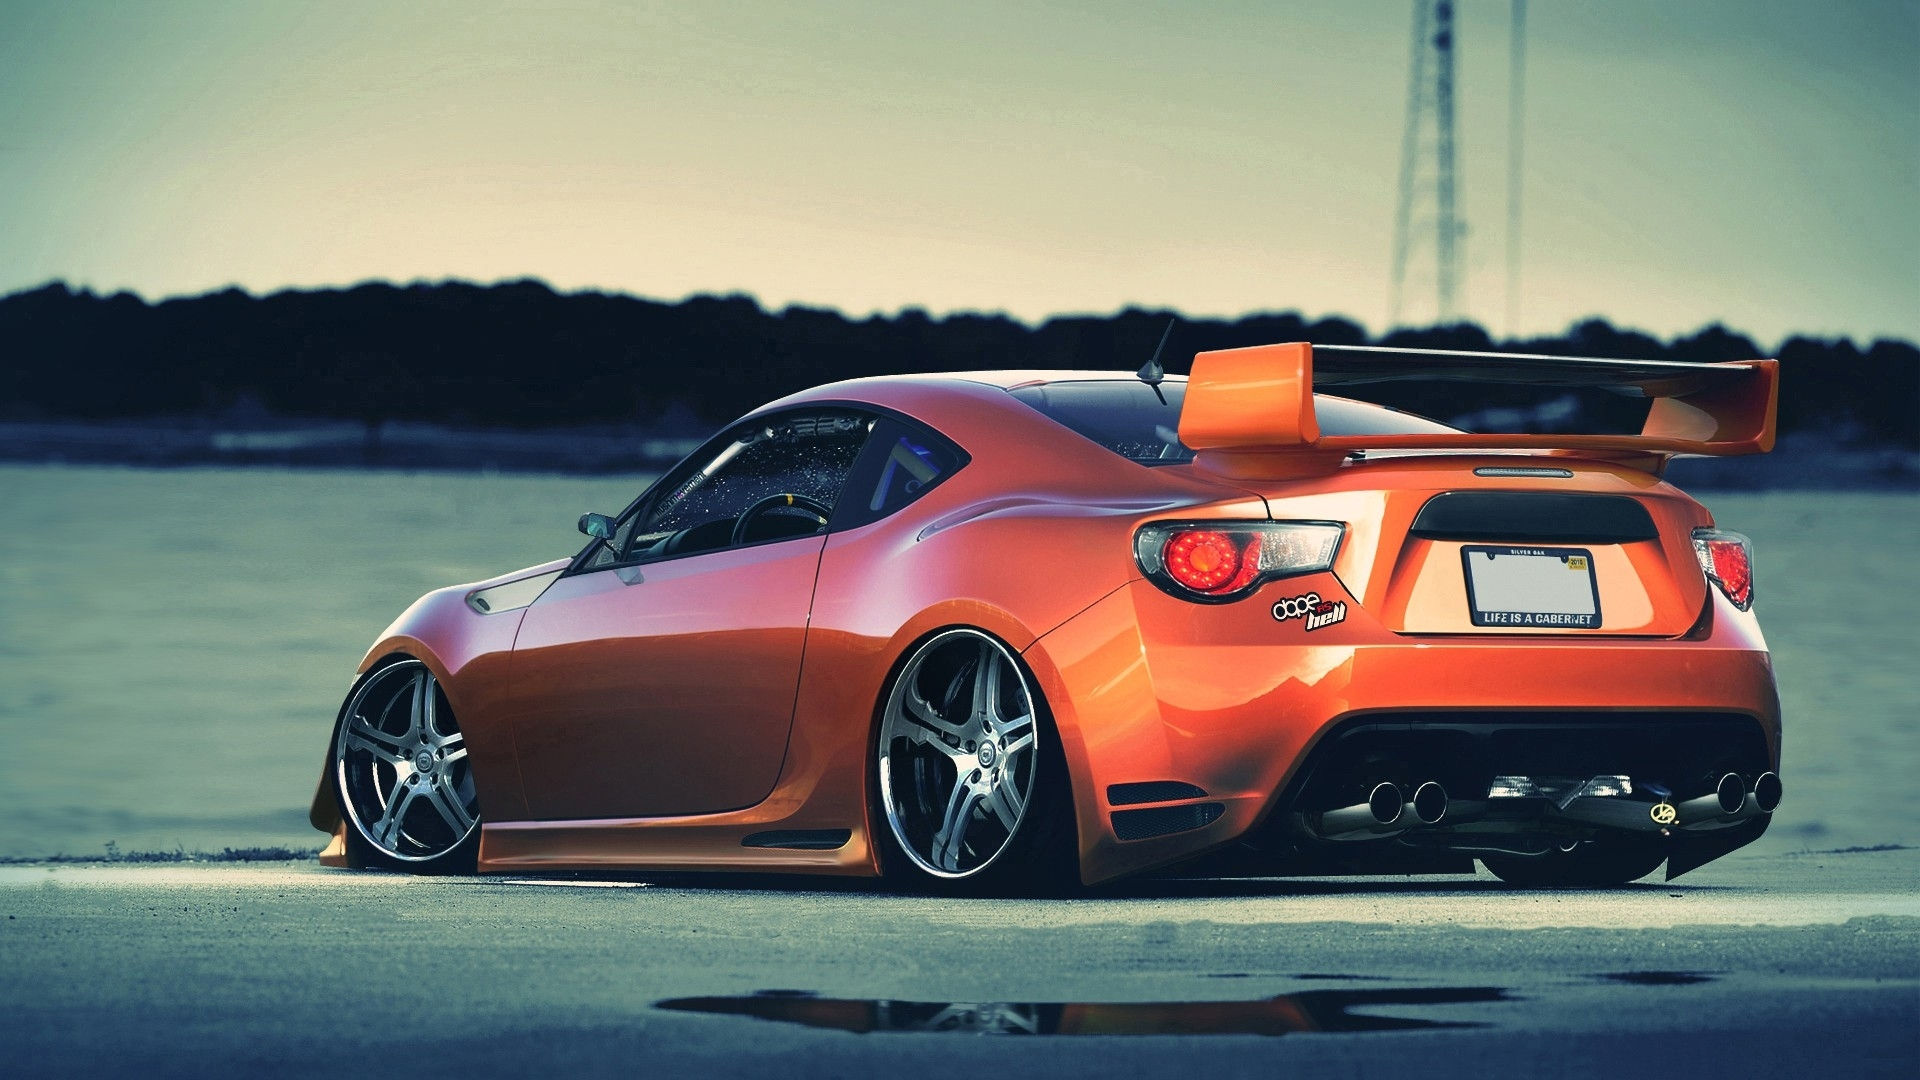 Cars tuning toyota gt86 wallpaper 1920x1080 30260 1920x1080